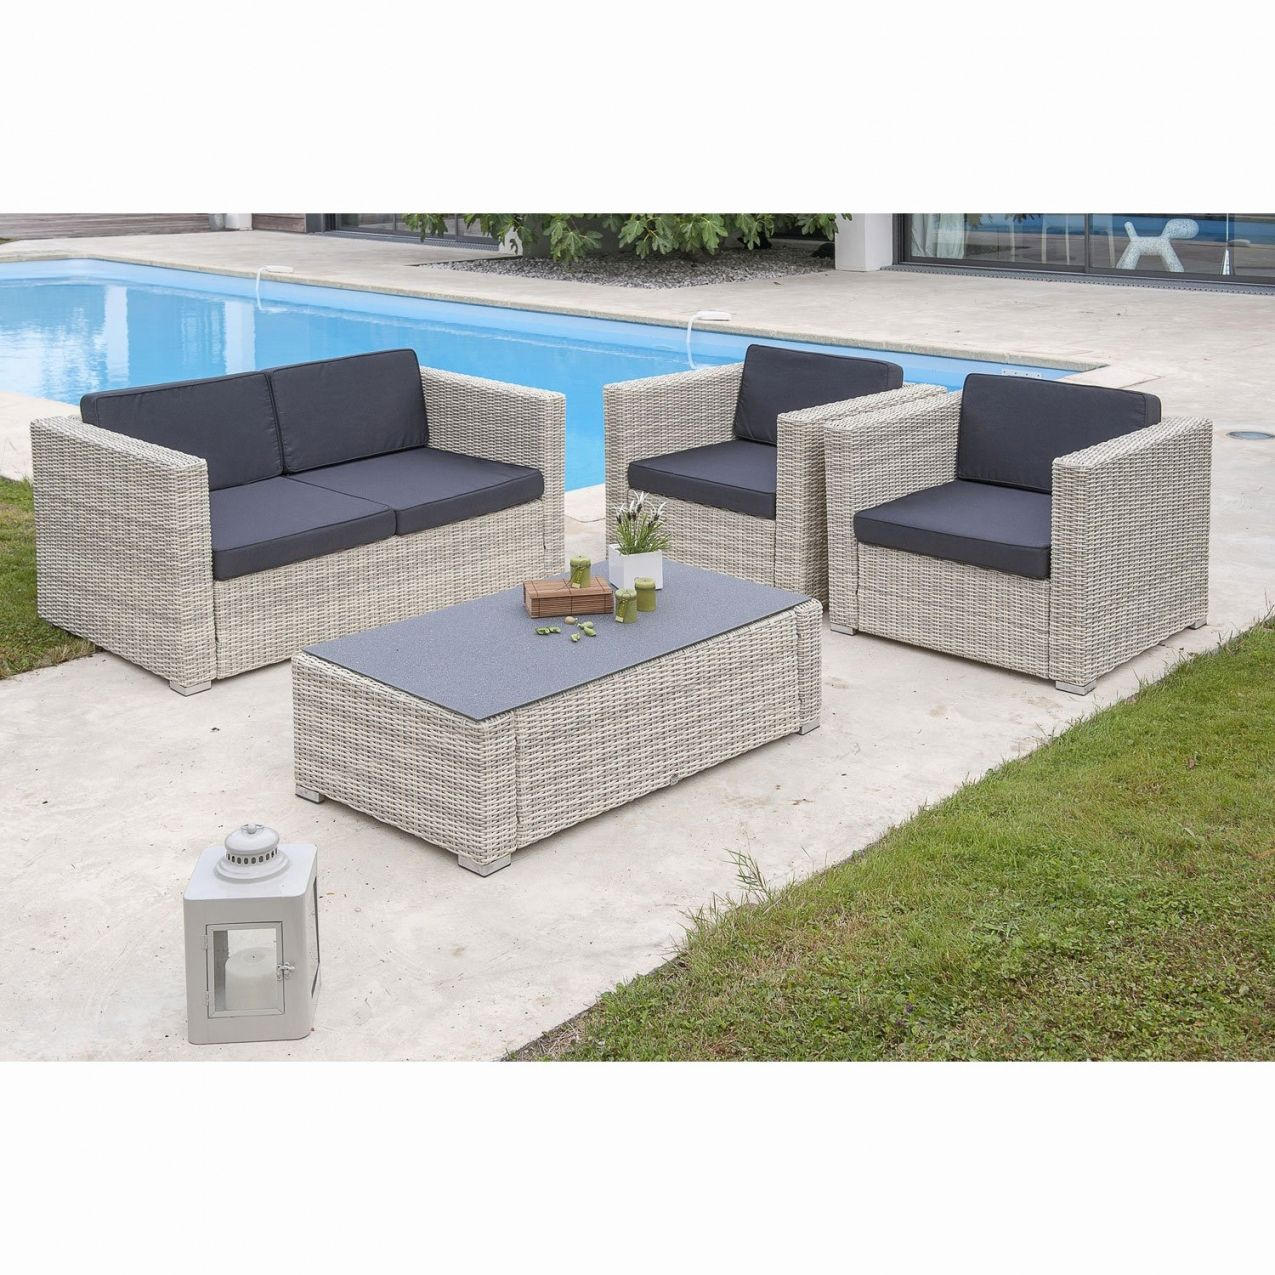 20 Salon De Jardin Vima 2019 Outdoor Furniture Sets Teak Patio